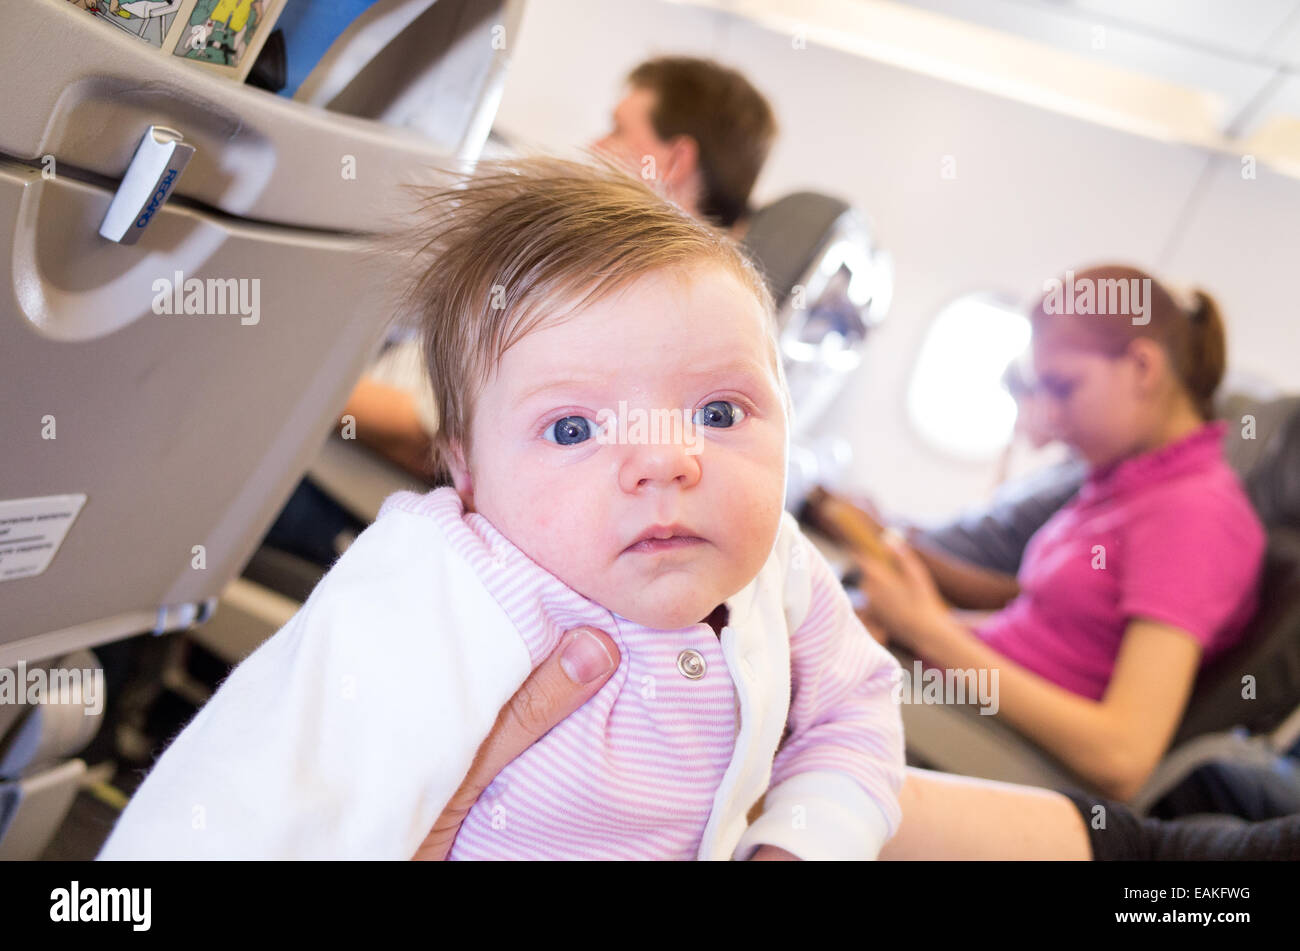 Travelling on an aeroplane with a one month old baby girl - Stock Image